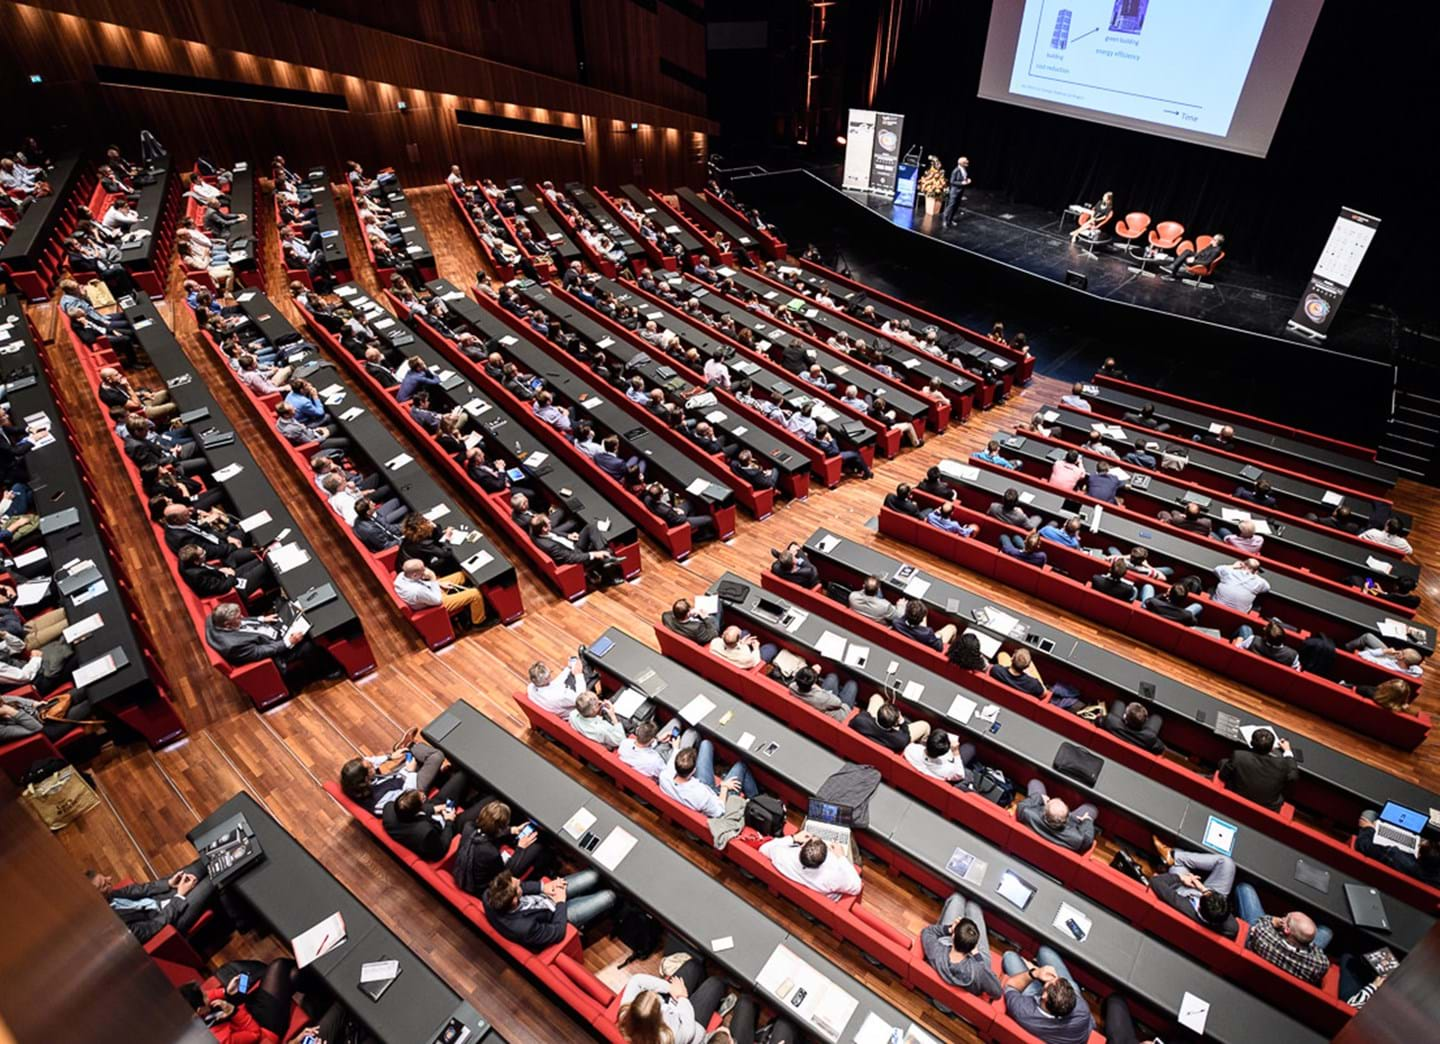 Well attended congresses expected for 2018